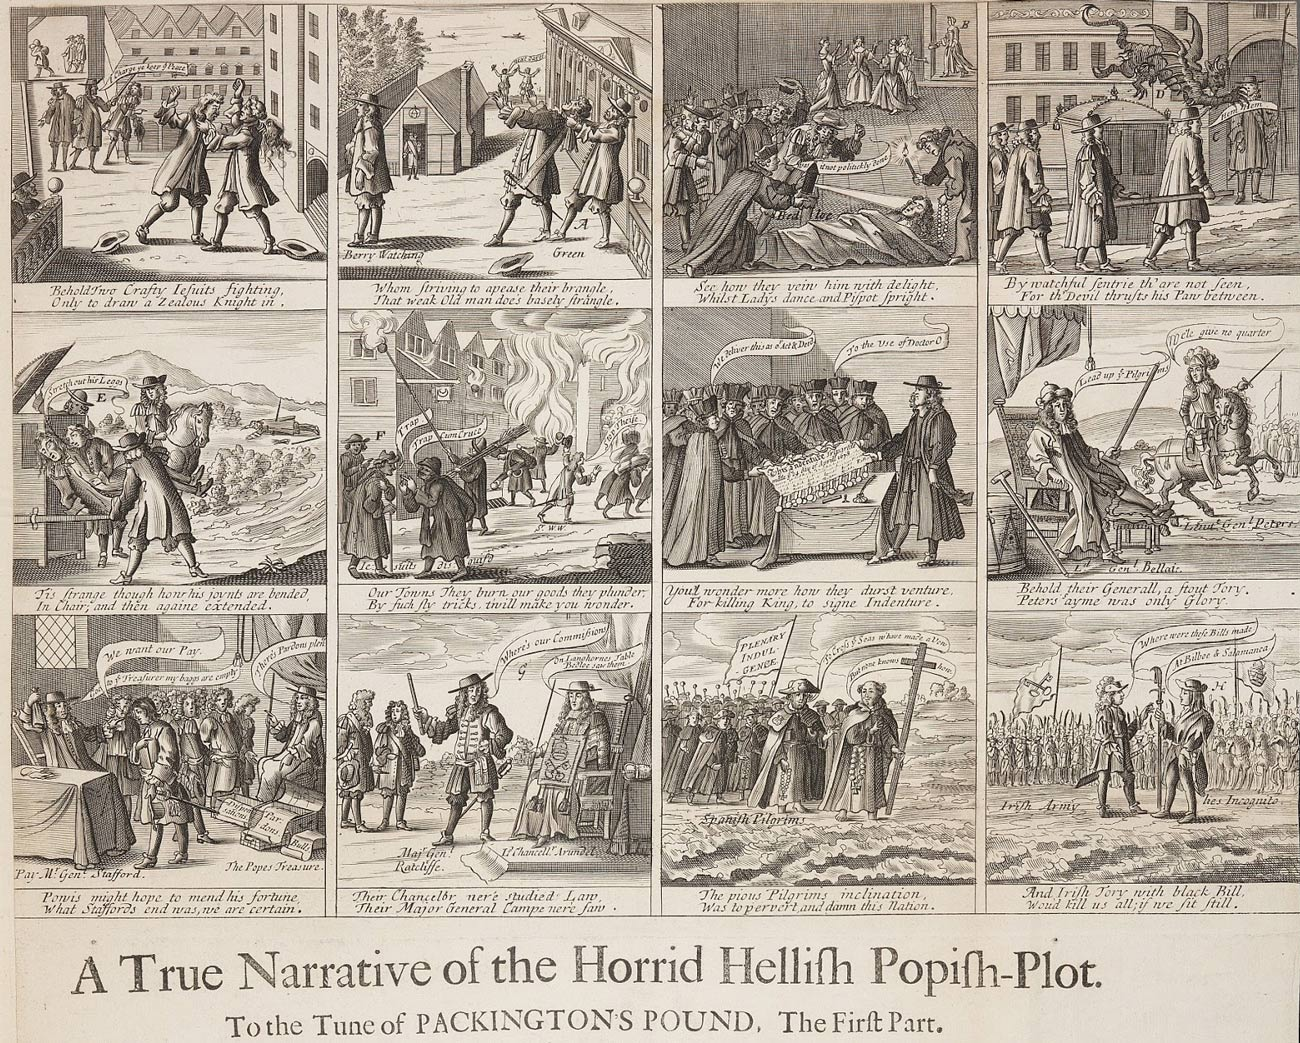 The Horrid Hellish Popish Plot, by Francis Barlow 1682